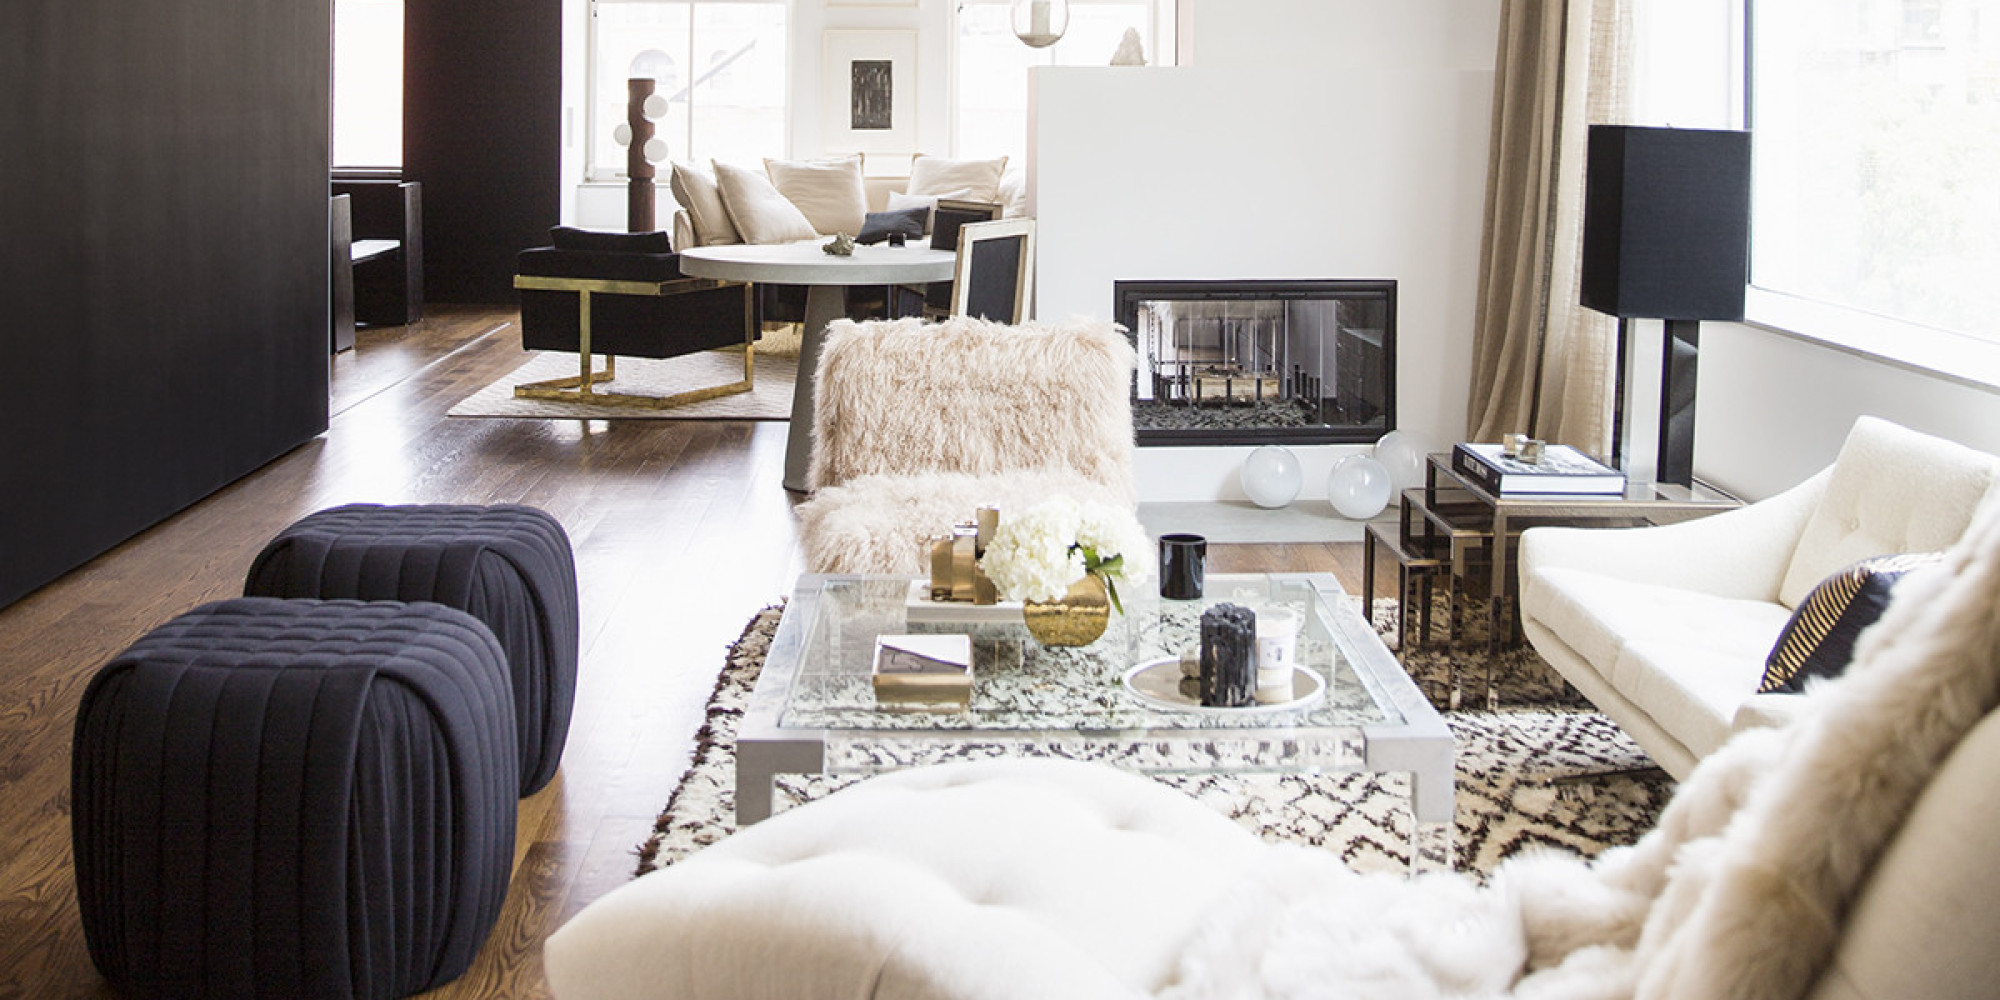 Inspirations from Nate Berkus luxury lighting Must-See Luxury Lighting Ideas For the Daring Designer Inspirations from Nate Berkus luxury lighting Must-See Luxury Lighting Ideas For the Daring Designer Inspirations from Nate Berkus